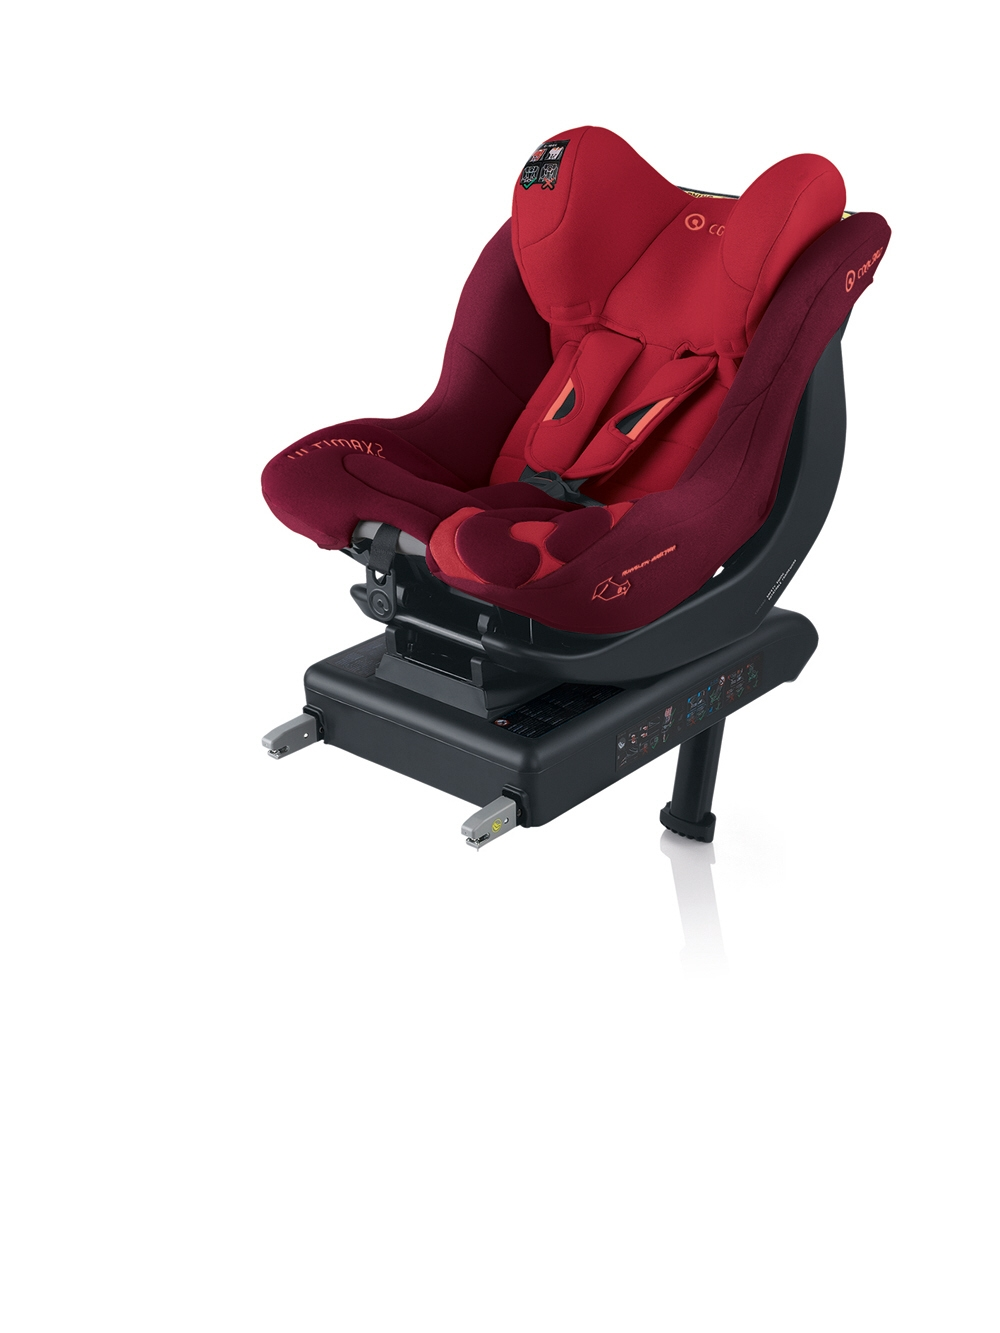 concord child car seat ultimax 2 isofix buy at kidsroom. Black Bedroom Furniture Sets. Home Design Ideas